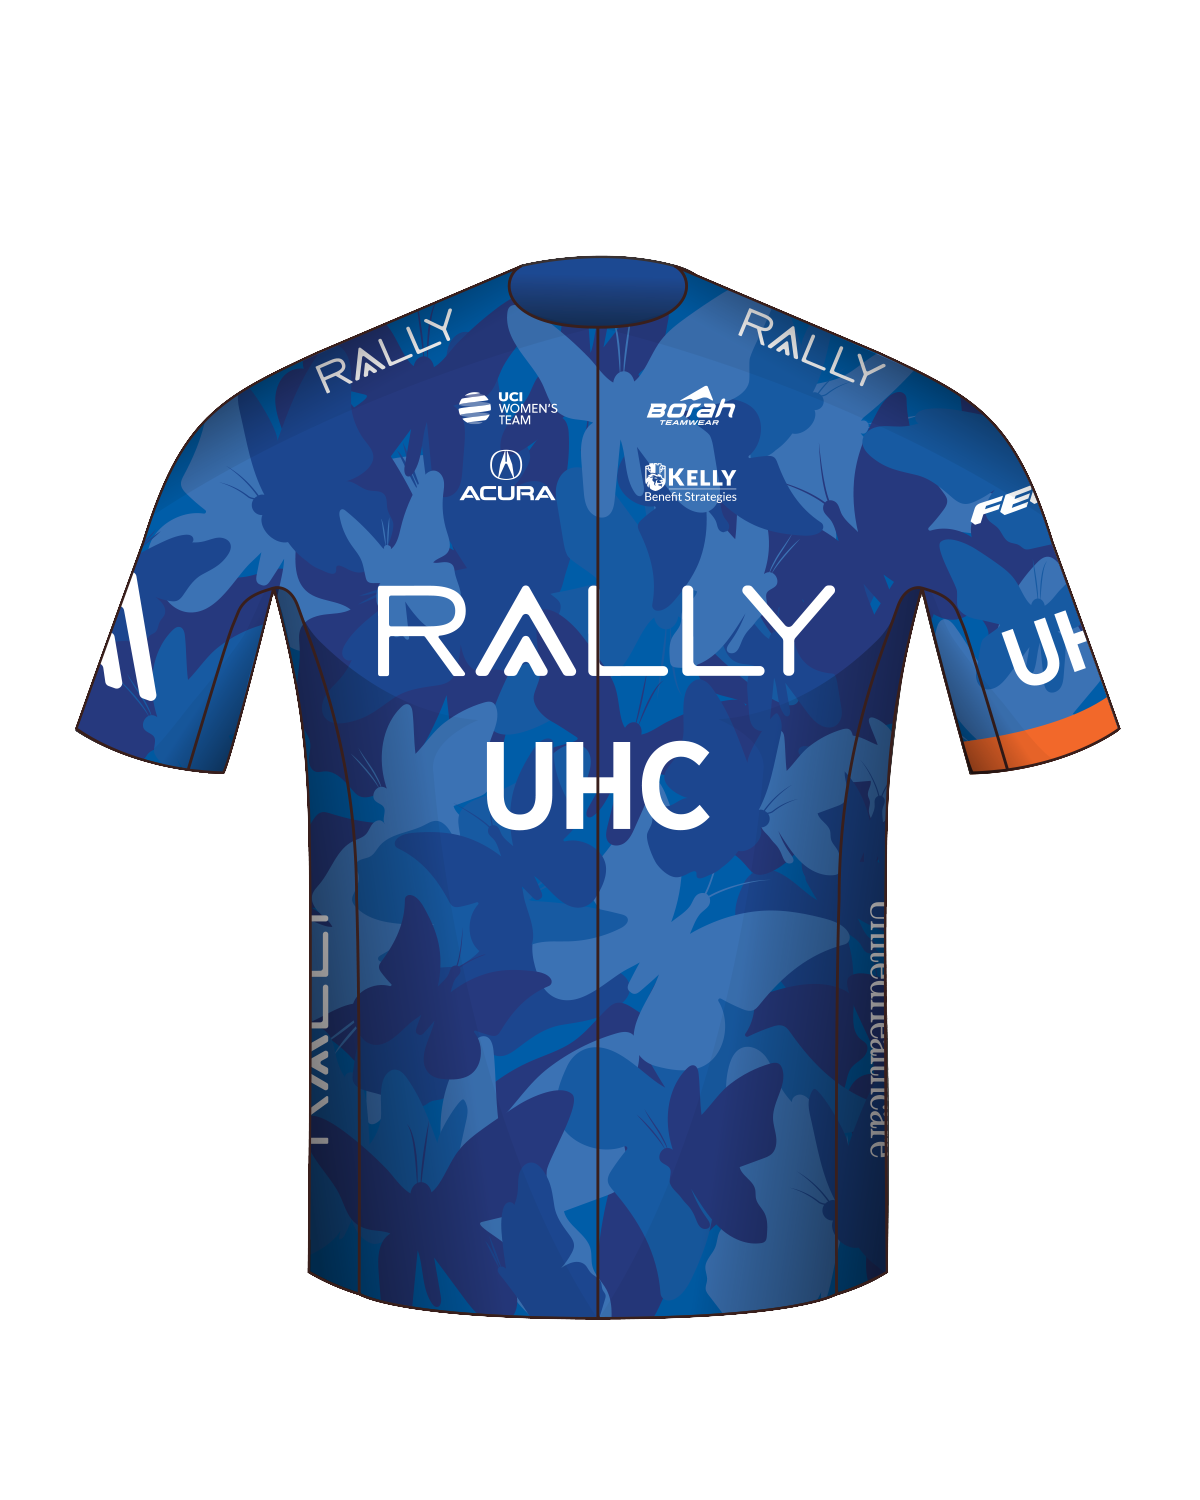 rally_UHC_jersey.png